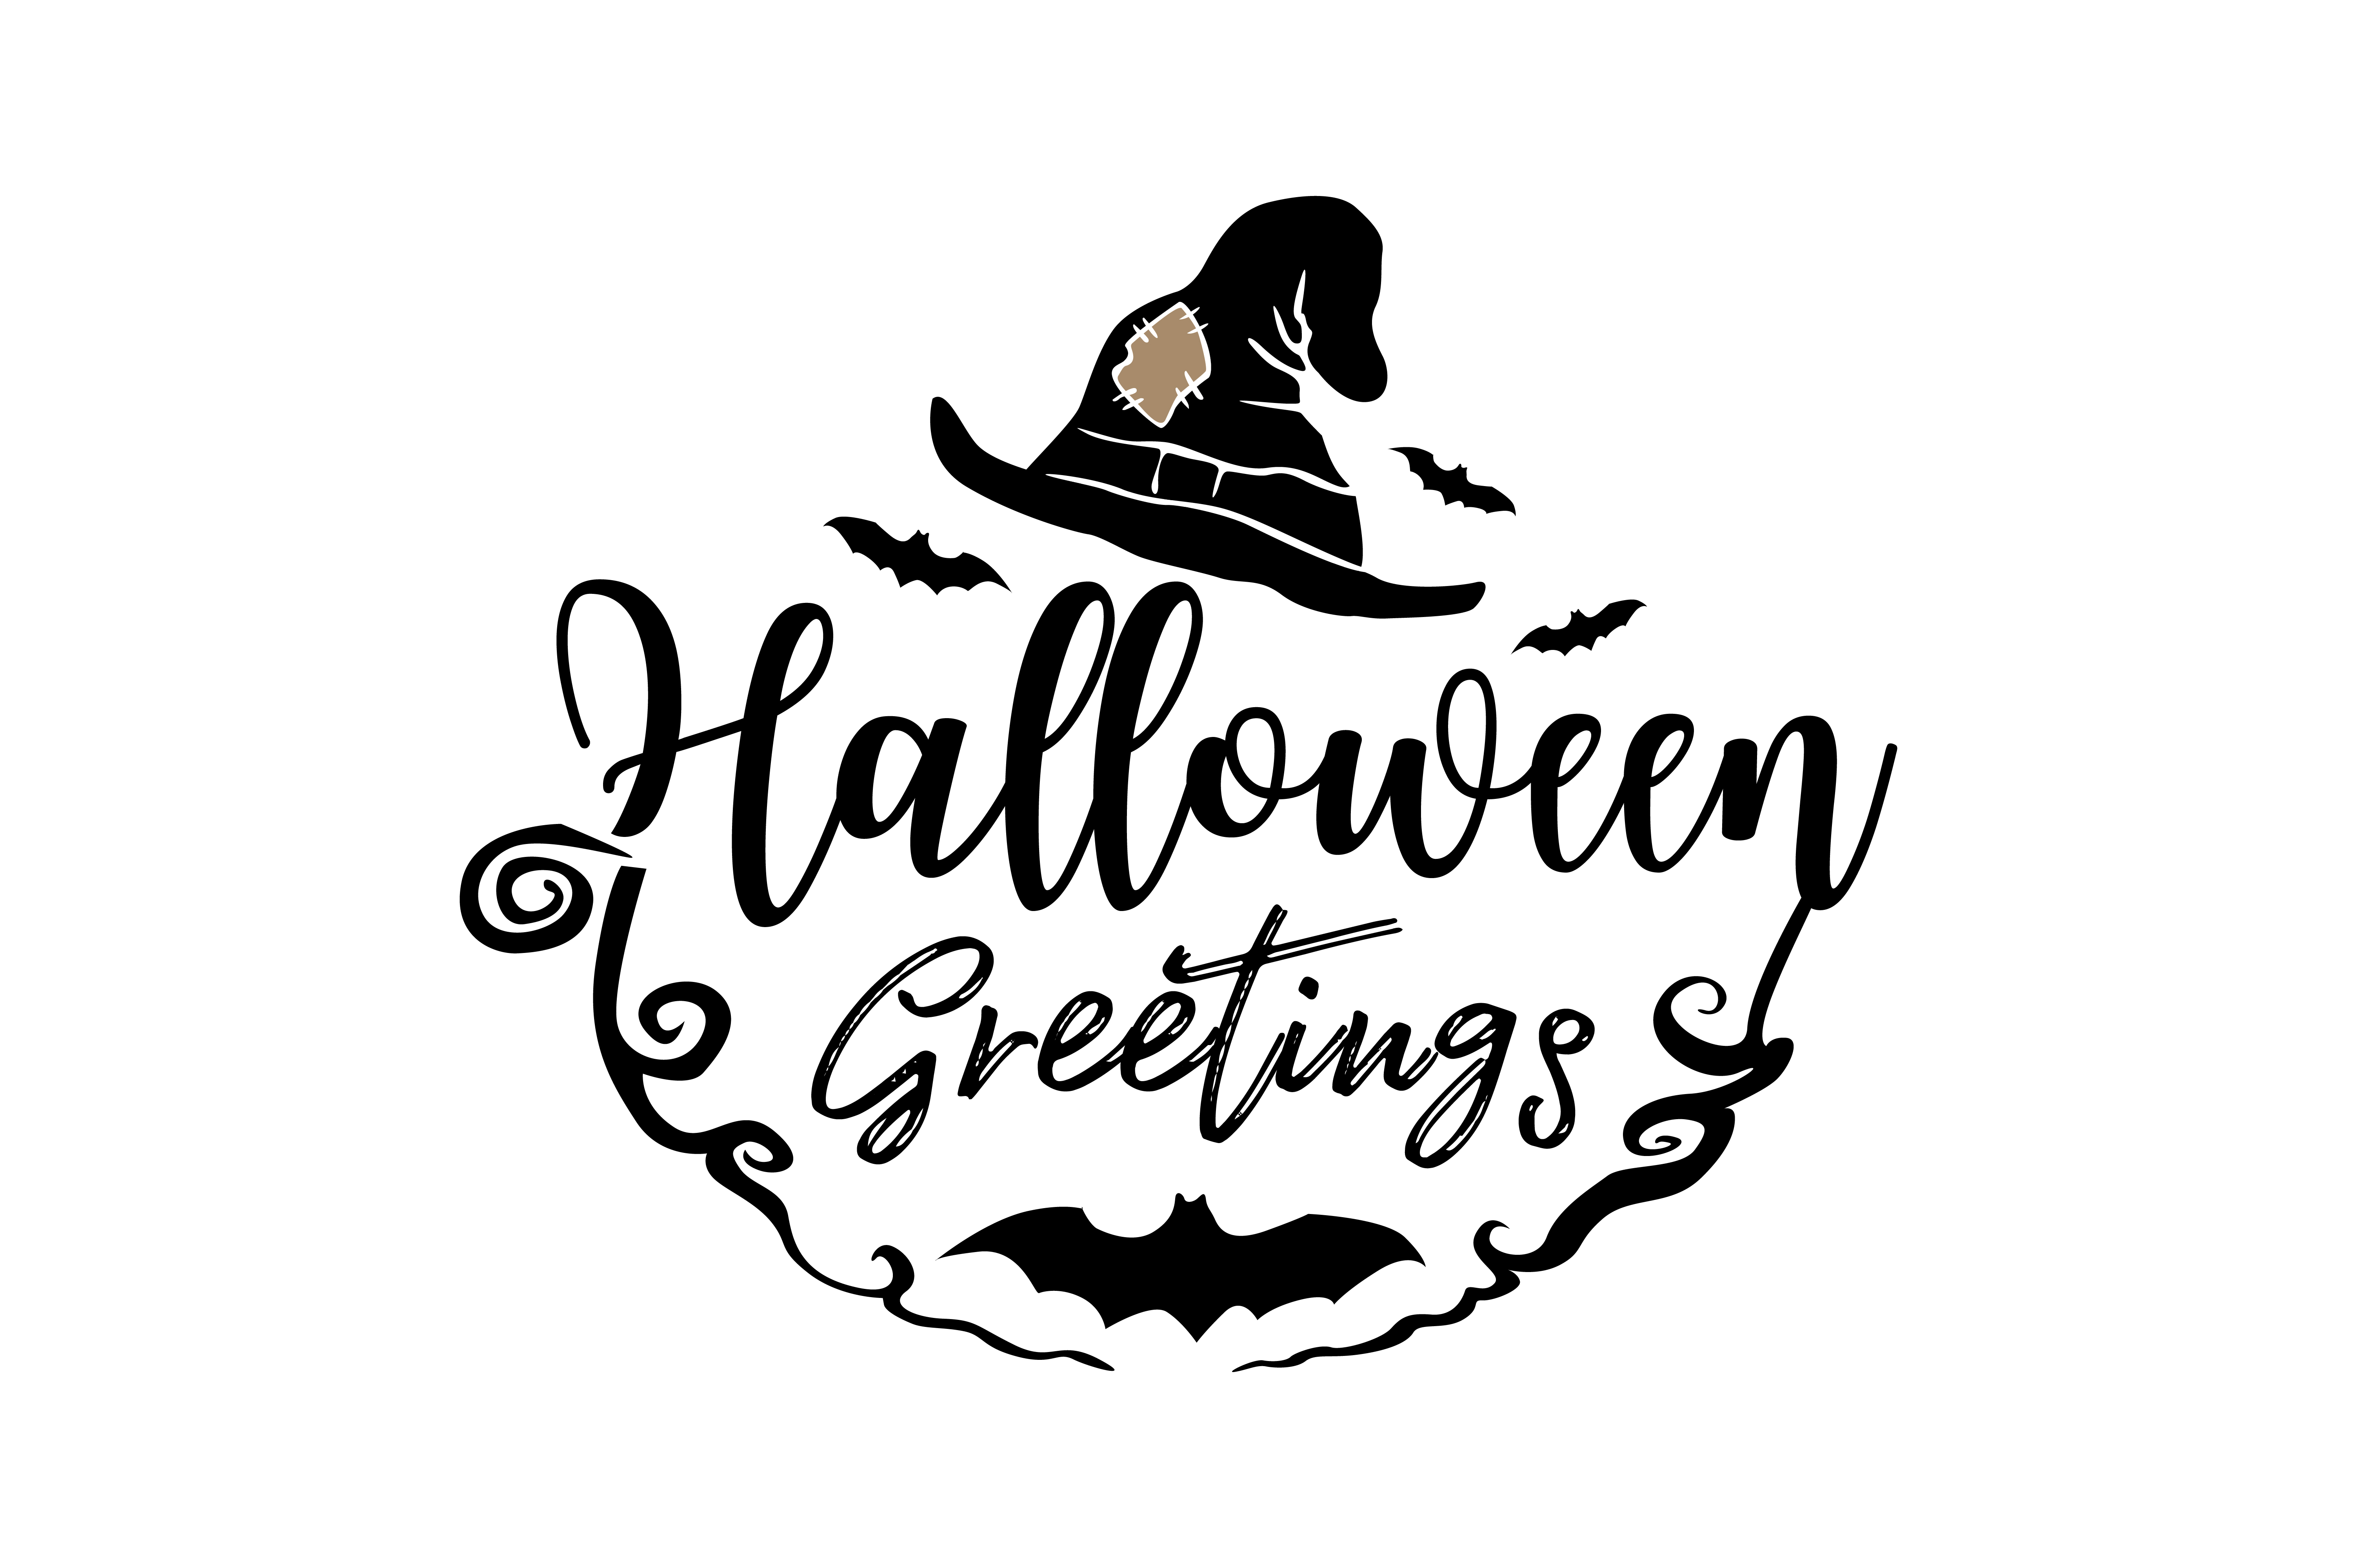 Download Free Halloween Greetings Graphic By Thelucky Creative Fabrica for Cricut Explore, Silhouette and other cutting machines.